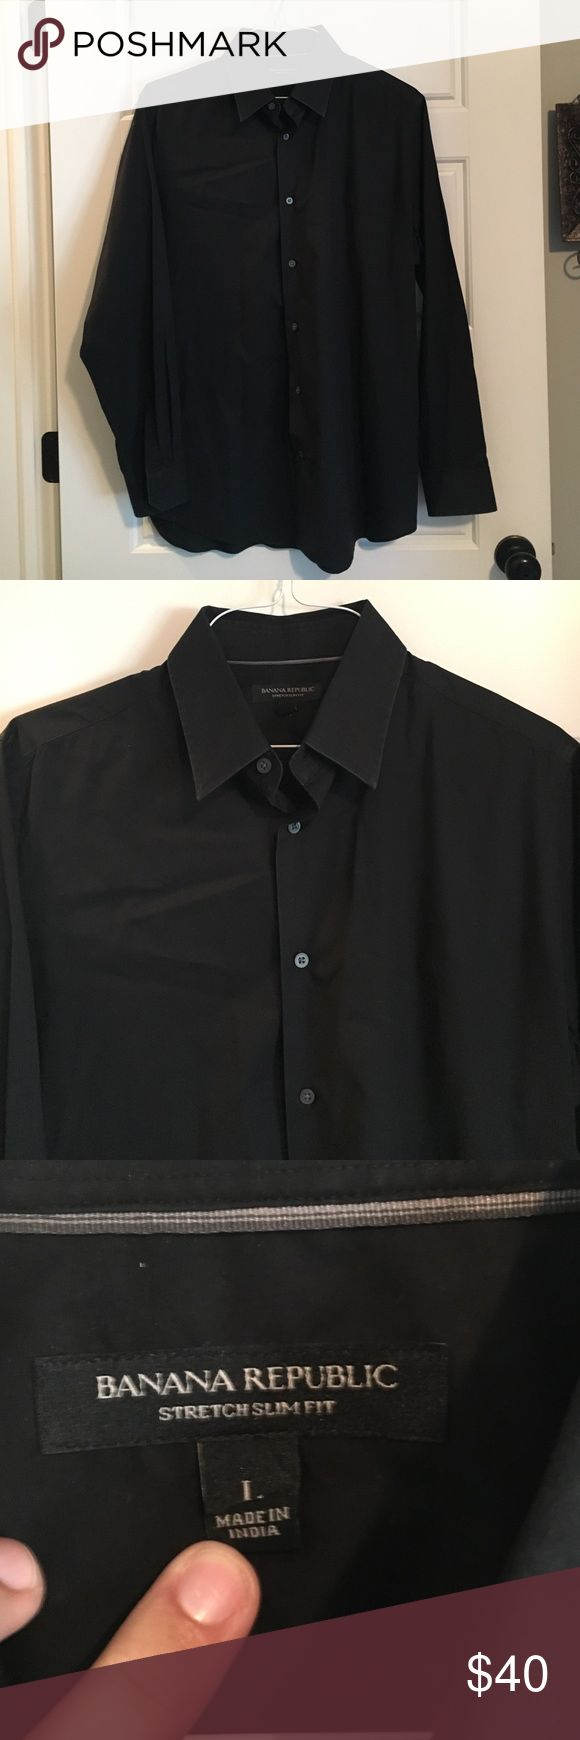 Banana Republic Men's Stretch Slim Fit Dress Shirt Banana Republic Men's Stretch Slim Fit Dress Shirt. Sz:L. Selling for my mother in law.. Solid black and no front pockets. (97% cotton 3% spandex) machine wash or dry clean. Extra buttons included. Banana Republic Shirts Casual Button Down Shirts